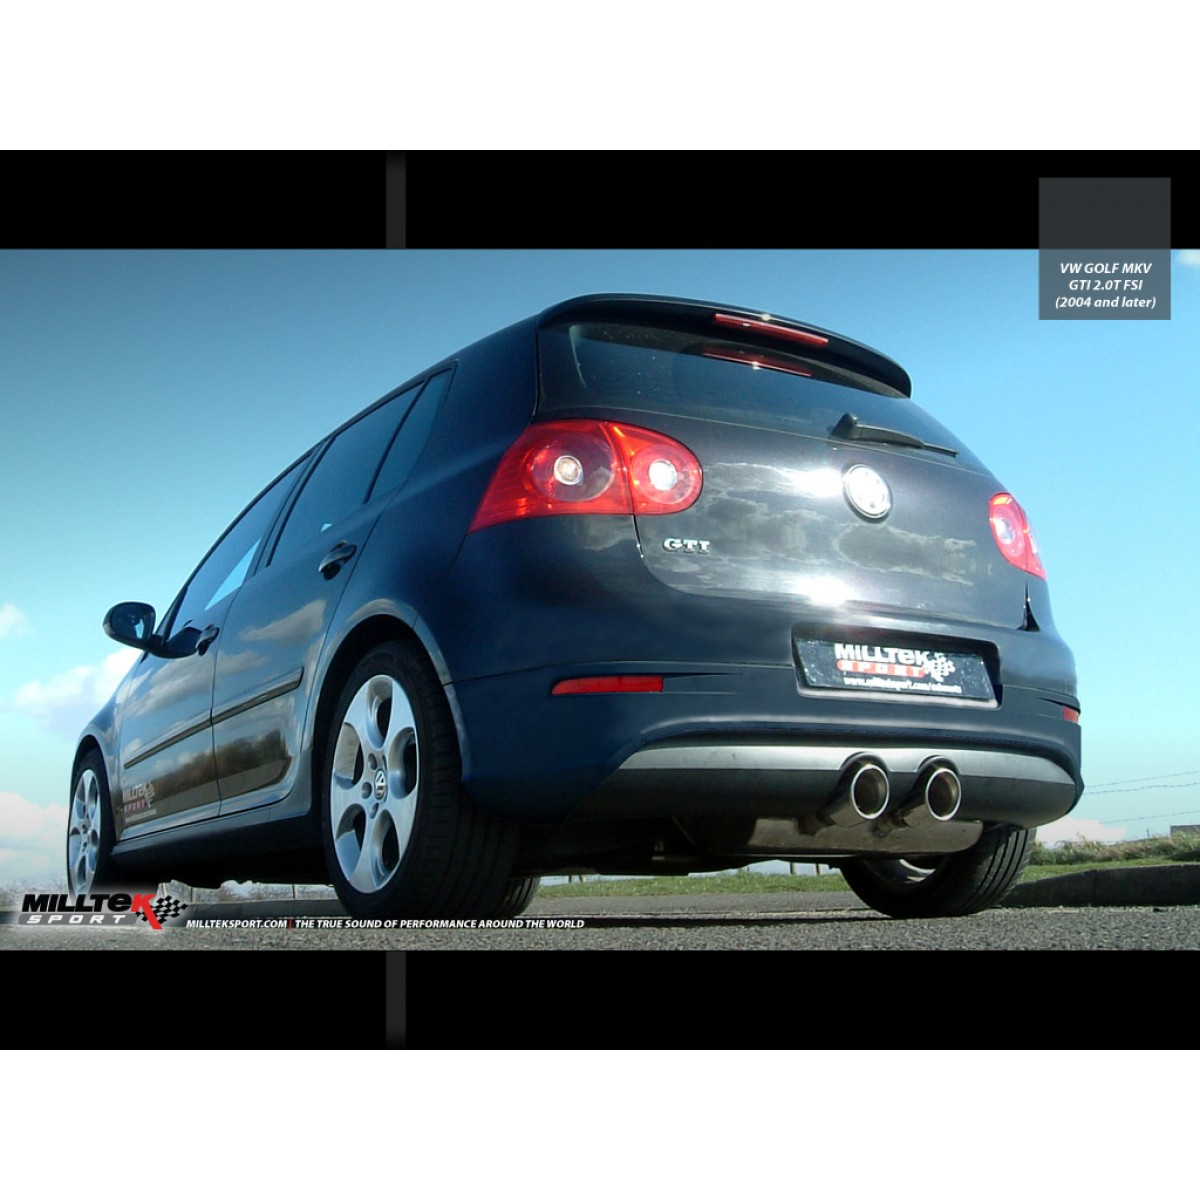 milltek sport vw golf 5 gti cat back r32 style resonated sklep. Black Bedroom Furniture Sets. Home Design Ideas